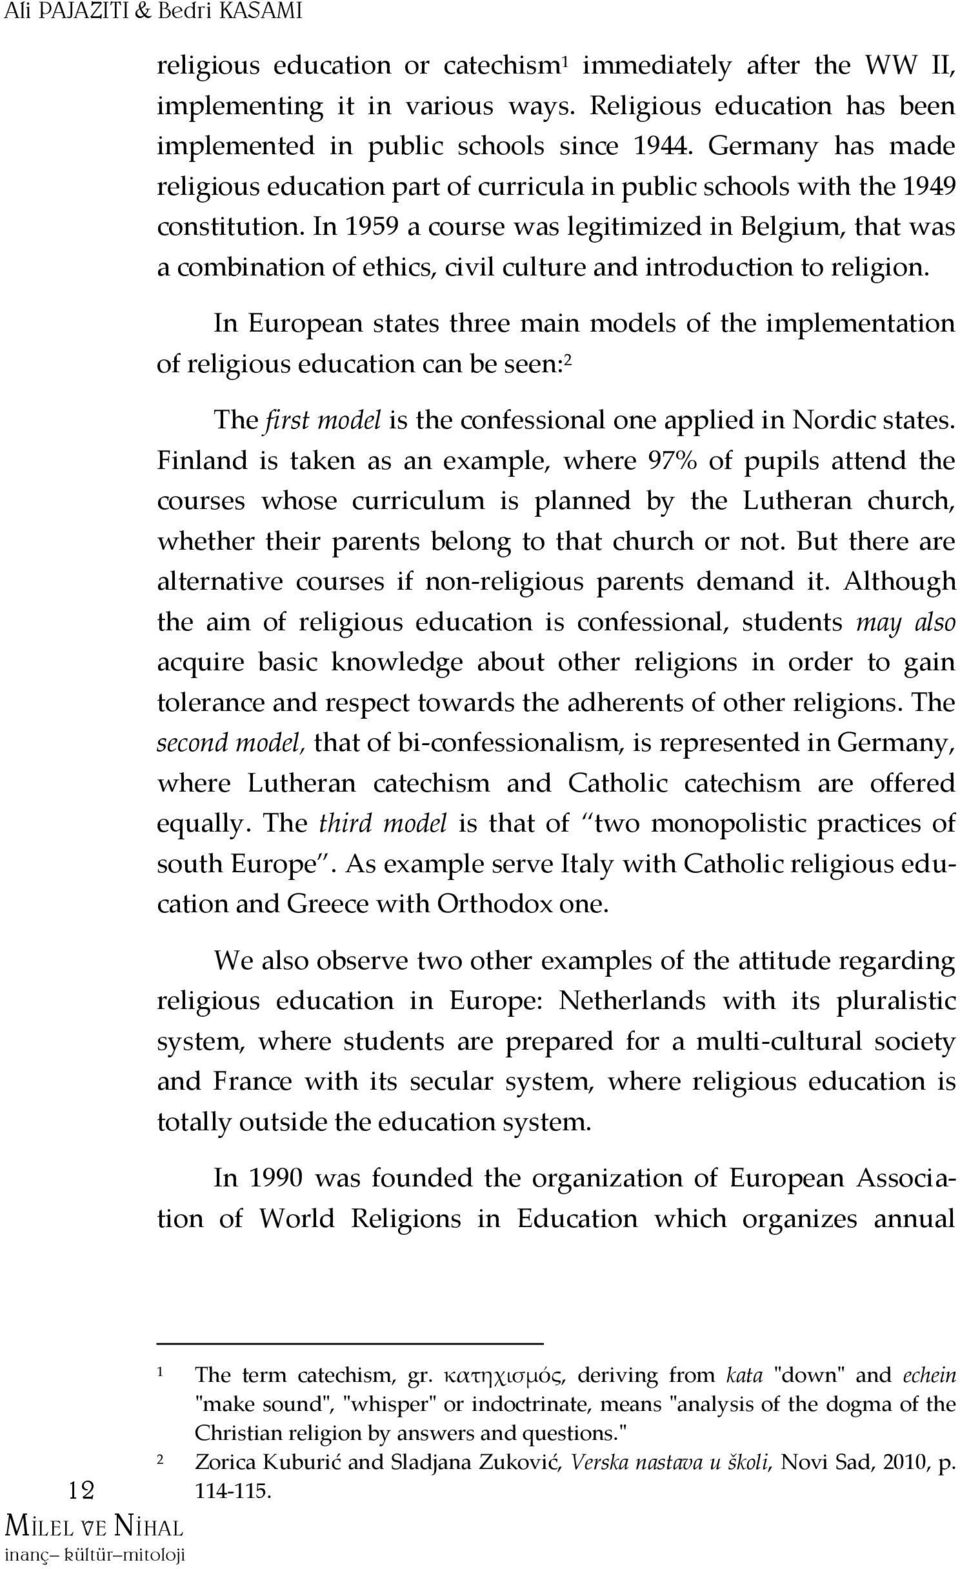 In 1959 a course was legitimized in Belgium, that was a combination of ethics, civil culture and introduction to religion.